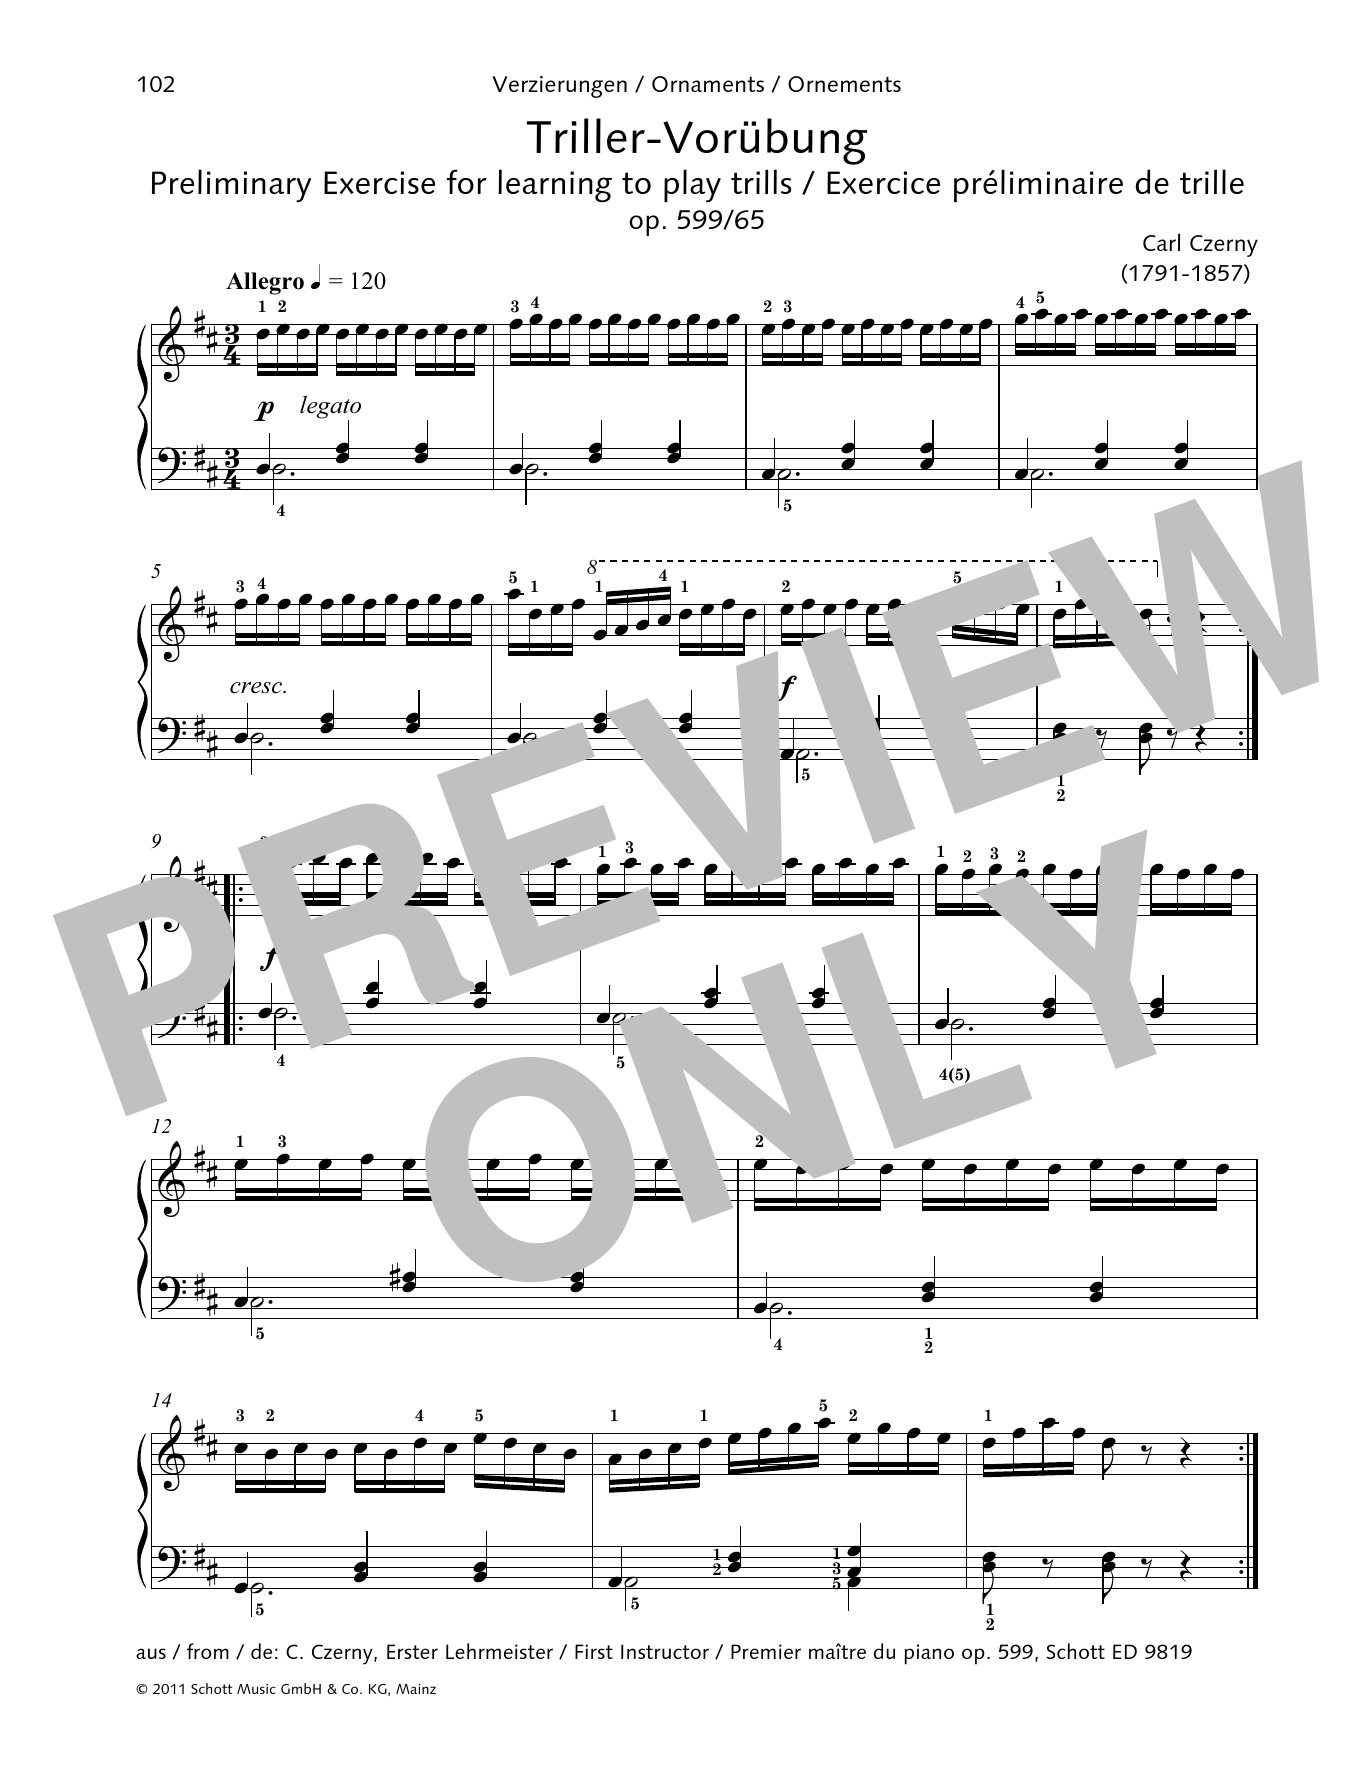 Preliminary Exercise for learning to play trills Sheet Music